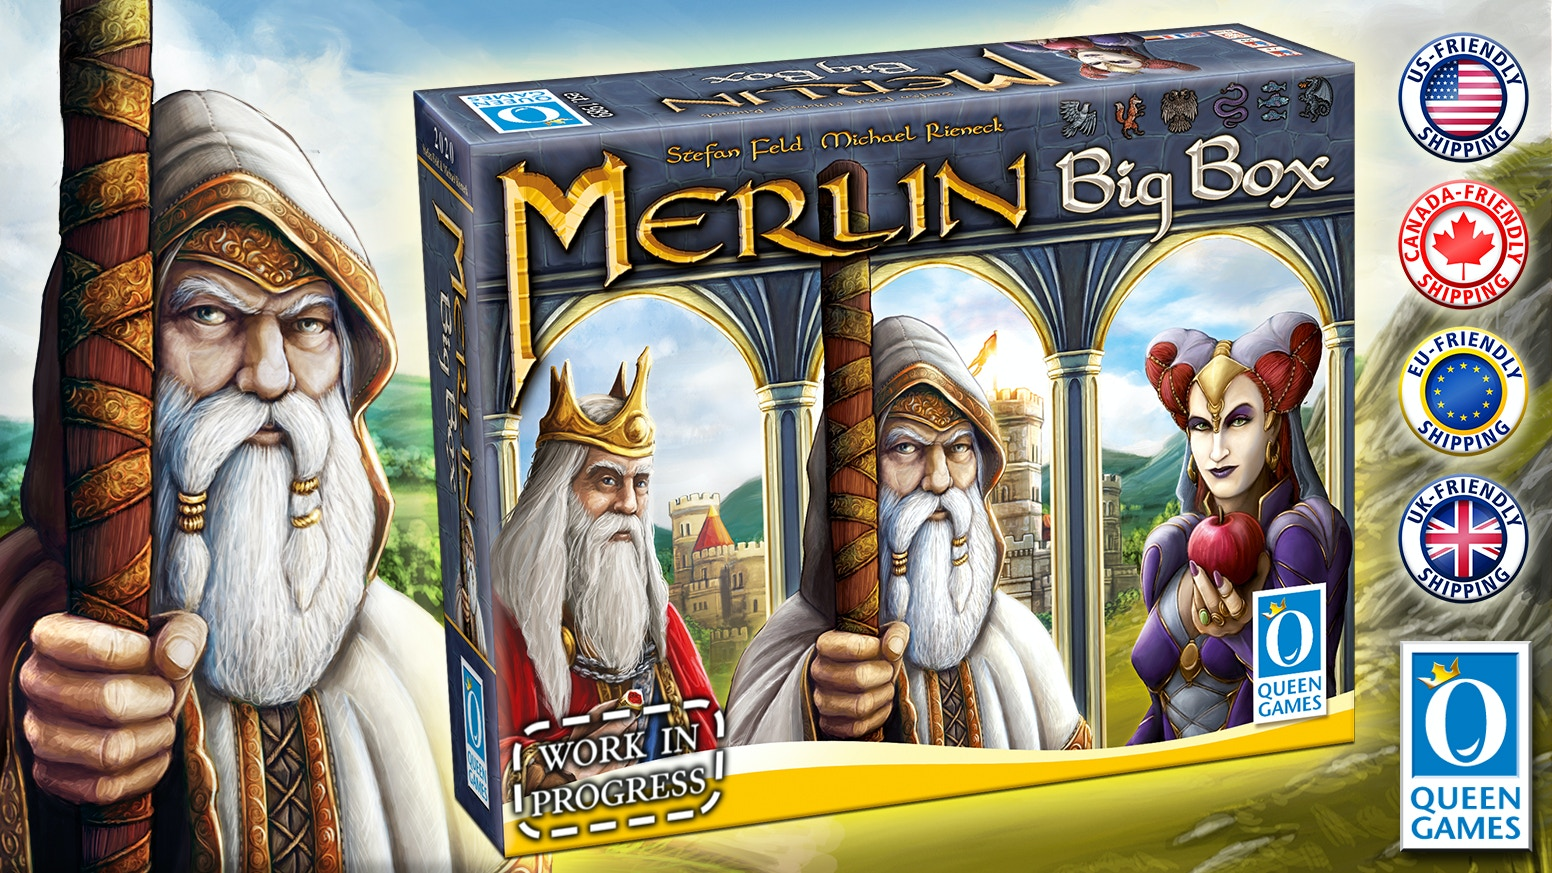 New Big Box with upgraded components and new expansion!